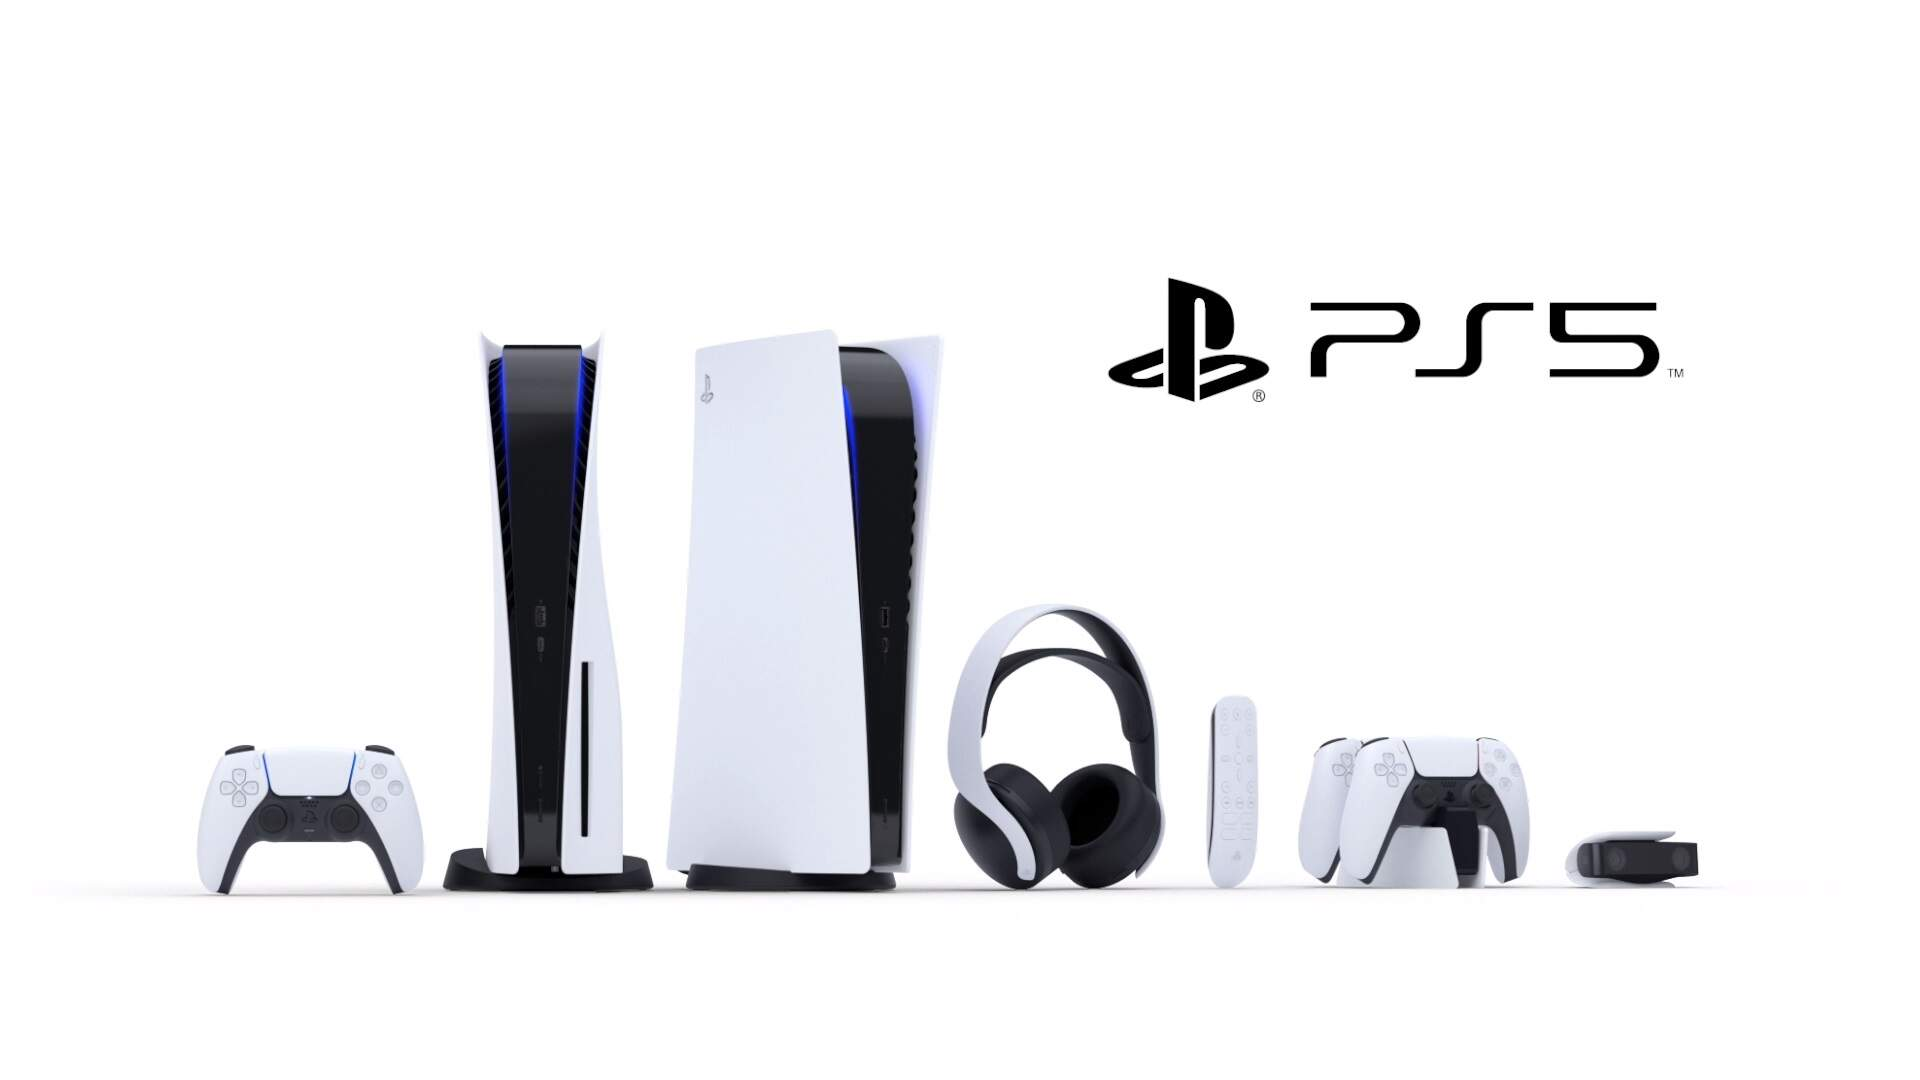 Reports: PS5 Production Will Nearly Double Toward the End of 2020